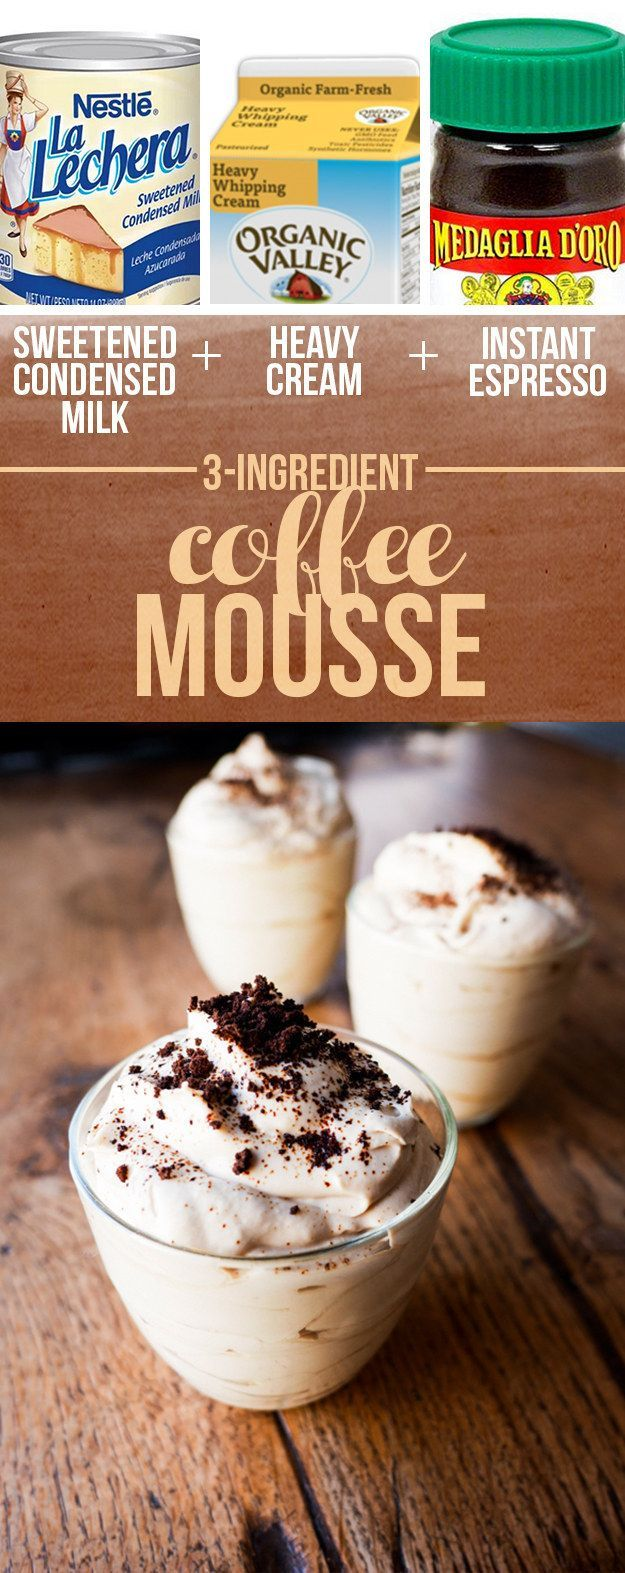 Sweetened Condensed Milk + Heavy Cream + Instant Espresso = Coffee Mousse